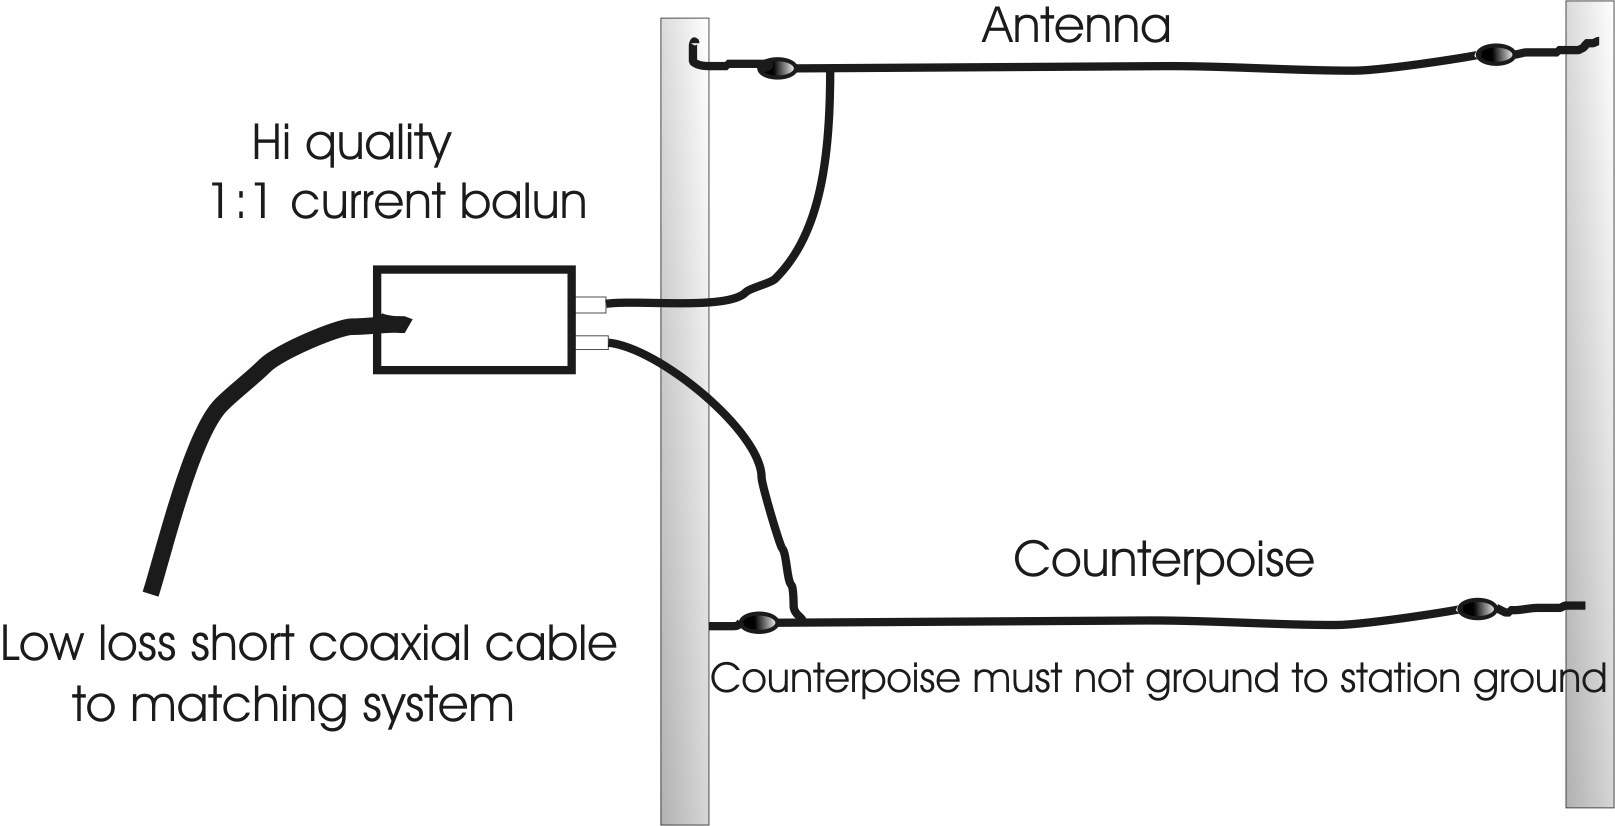 antenna rotor wiring diagram tv rotator remote 2000 ford f250 4x4 wire schematic design of electrical circuit